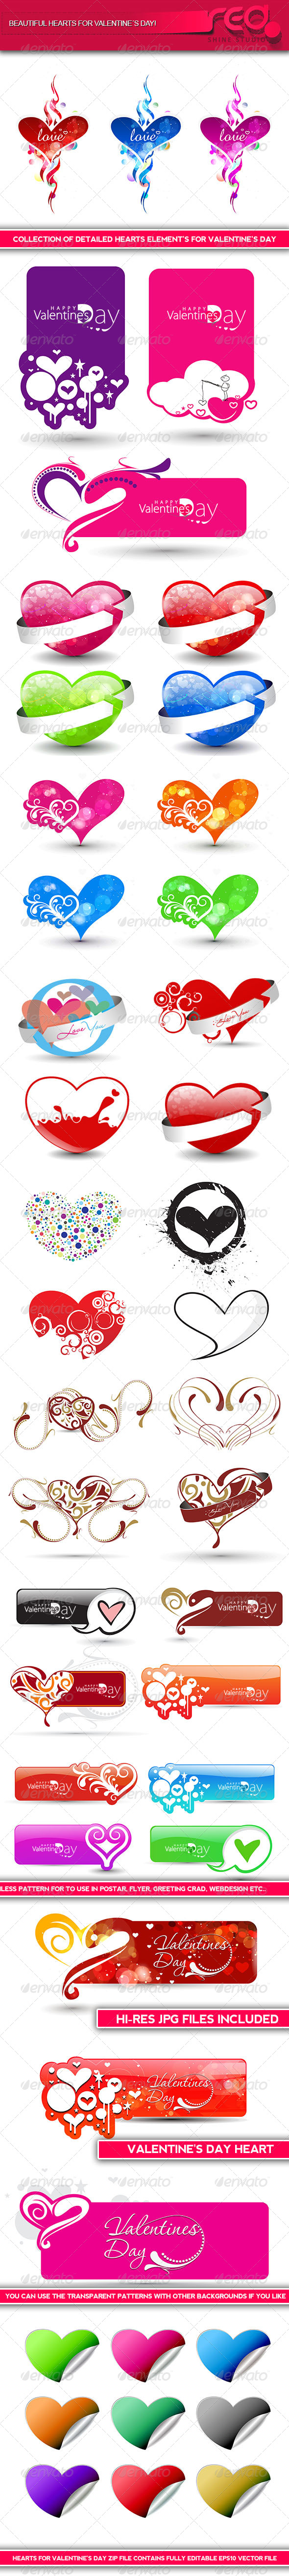 Valentine s Day Heart Shape